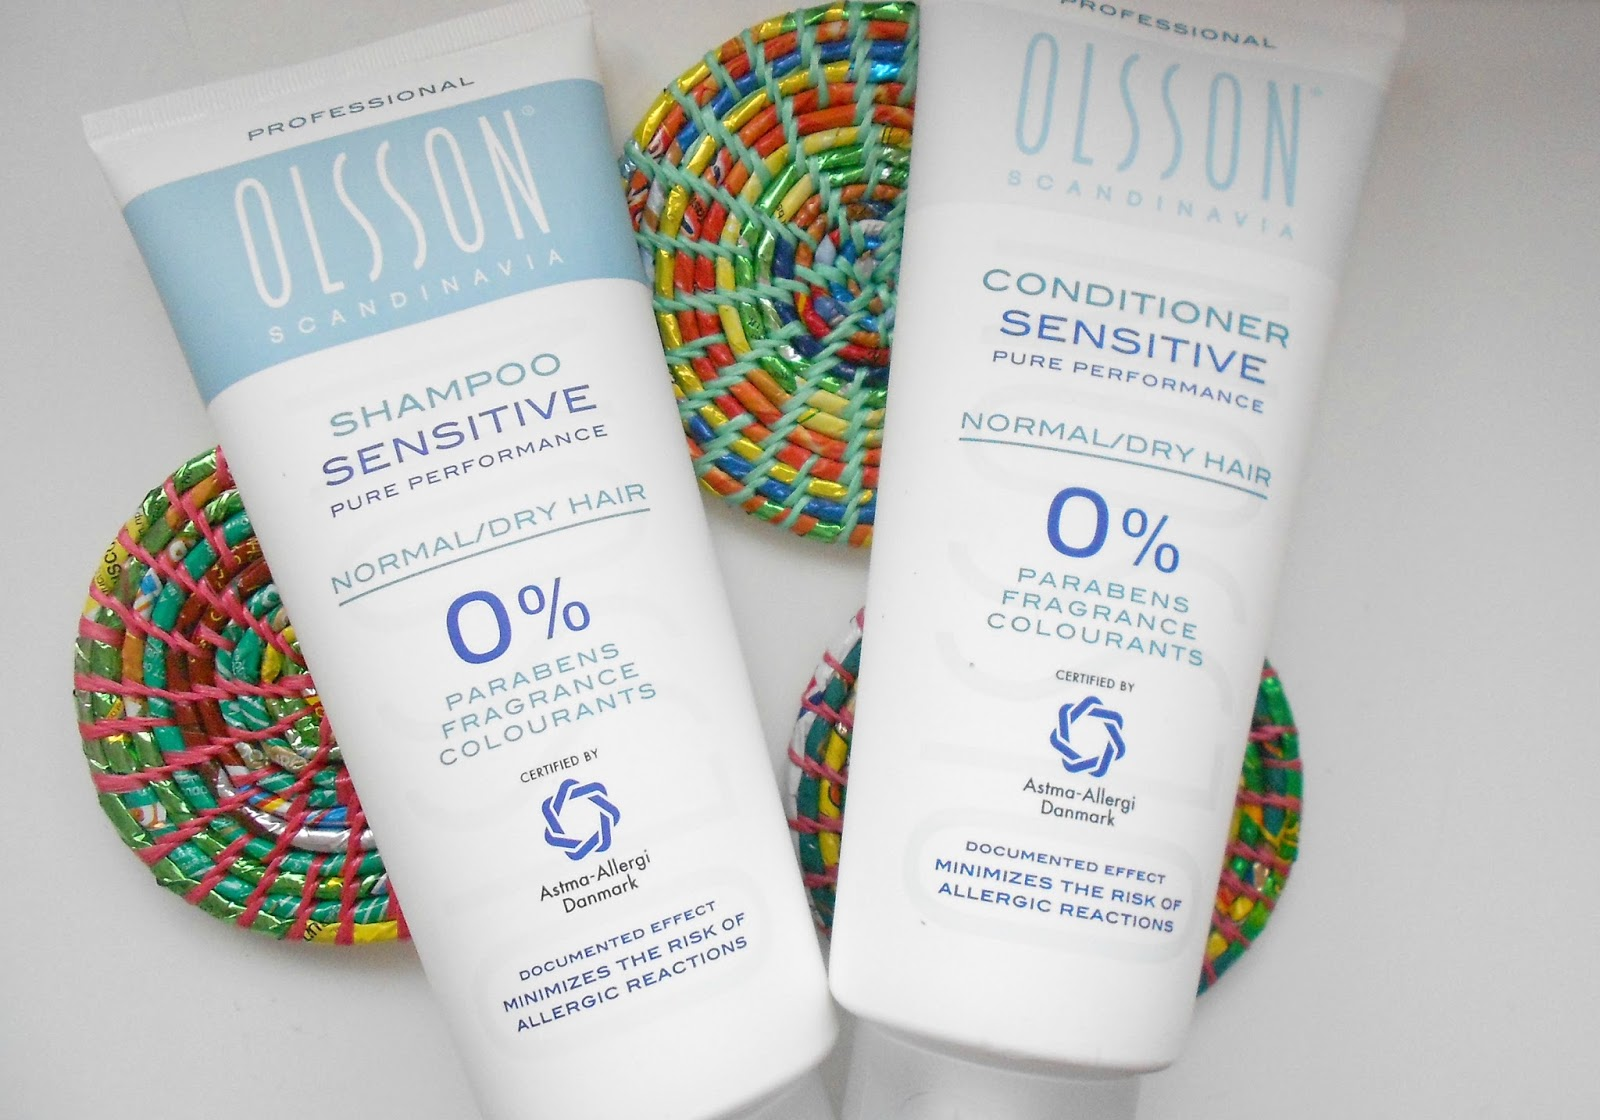 olsson haircare review